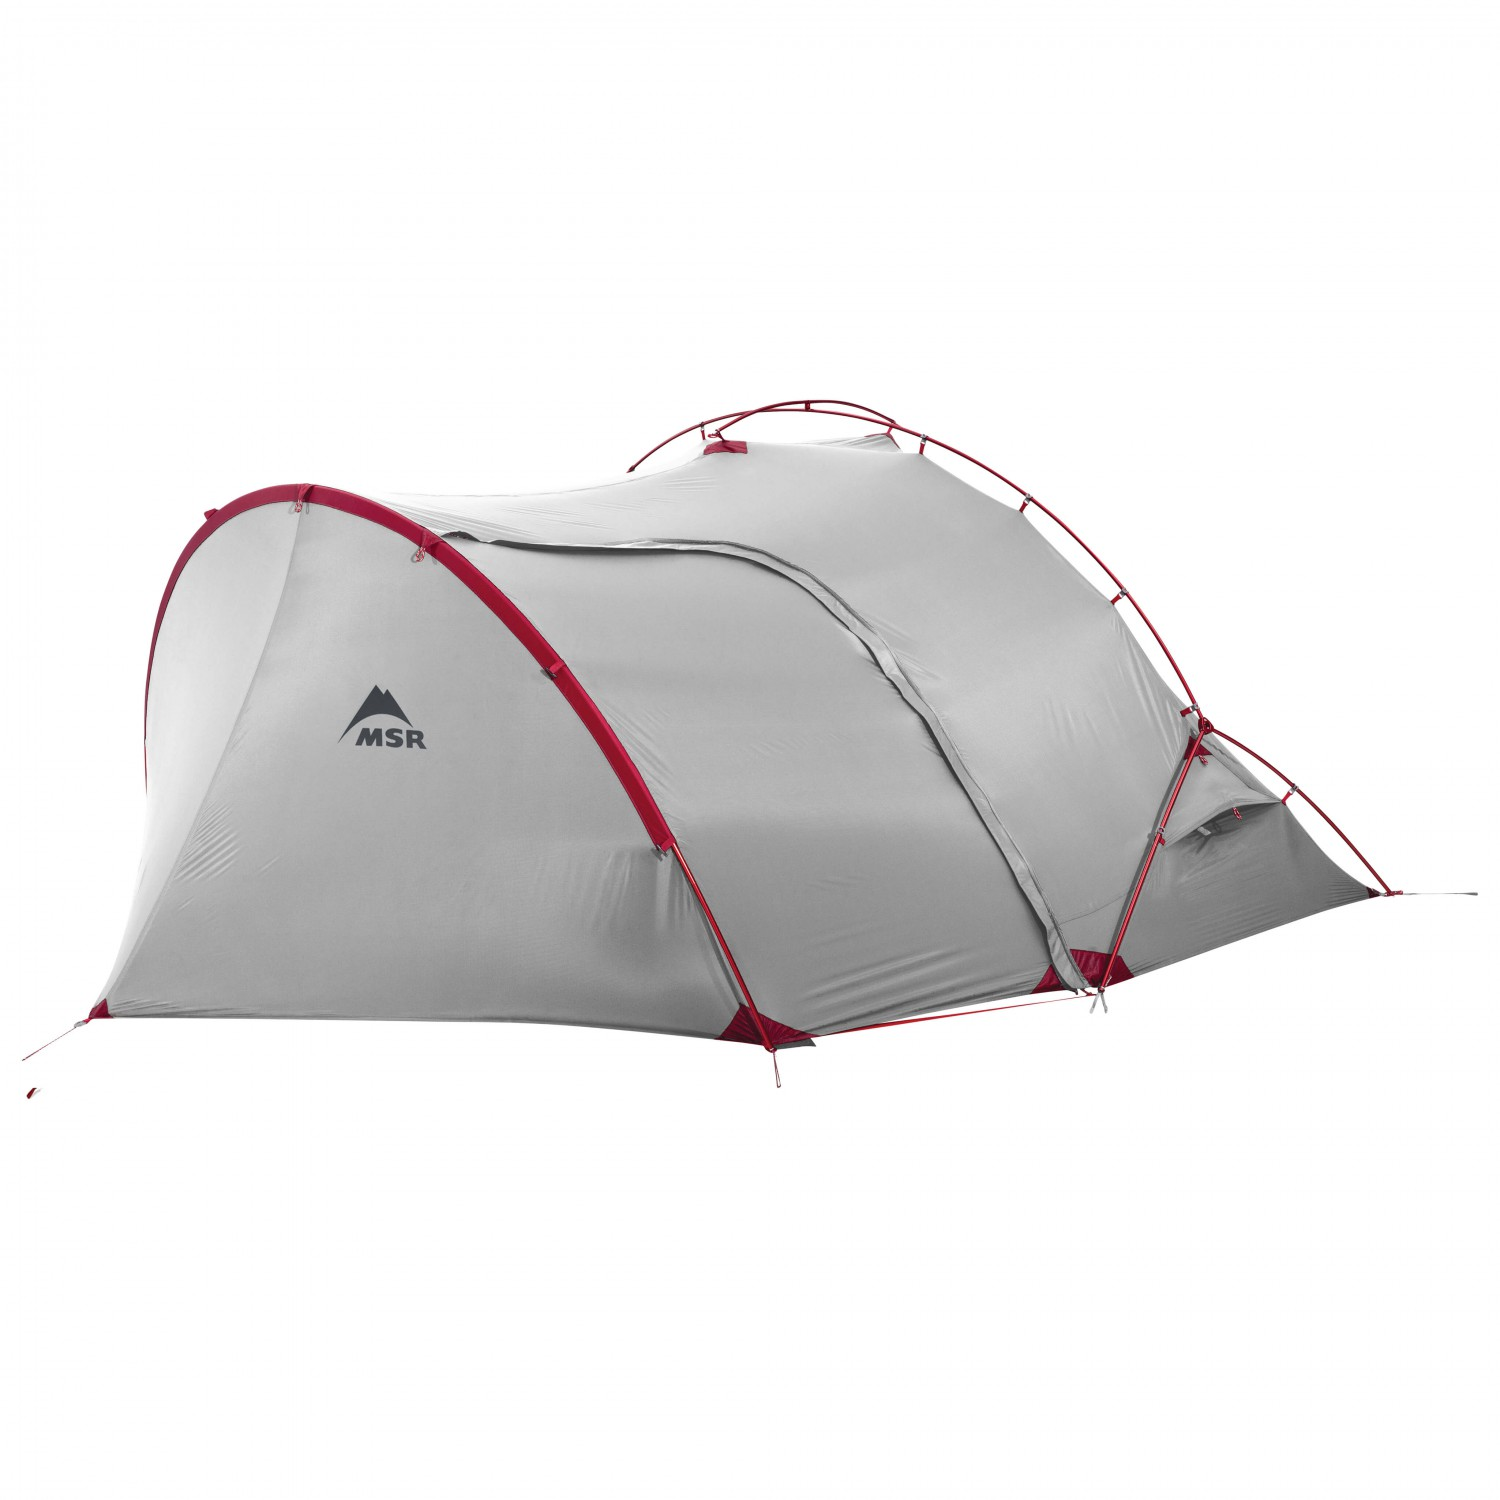 MSR - Hubba Tour 1 - 1-person tent ...  sc 1 st  Alpinetrek & MSR Hubba Tour 1 - 1-Person Tent | Buy online | Alpinetrek.co.uk